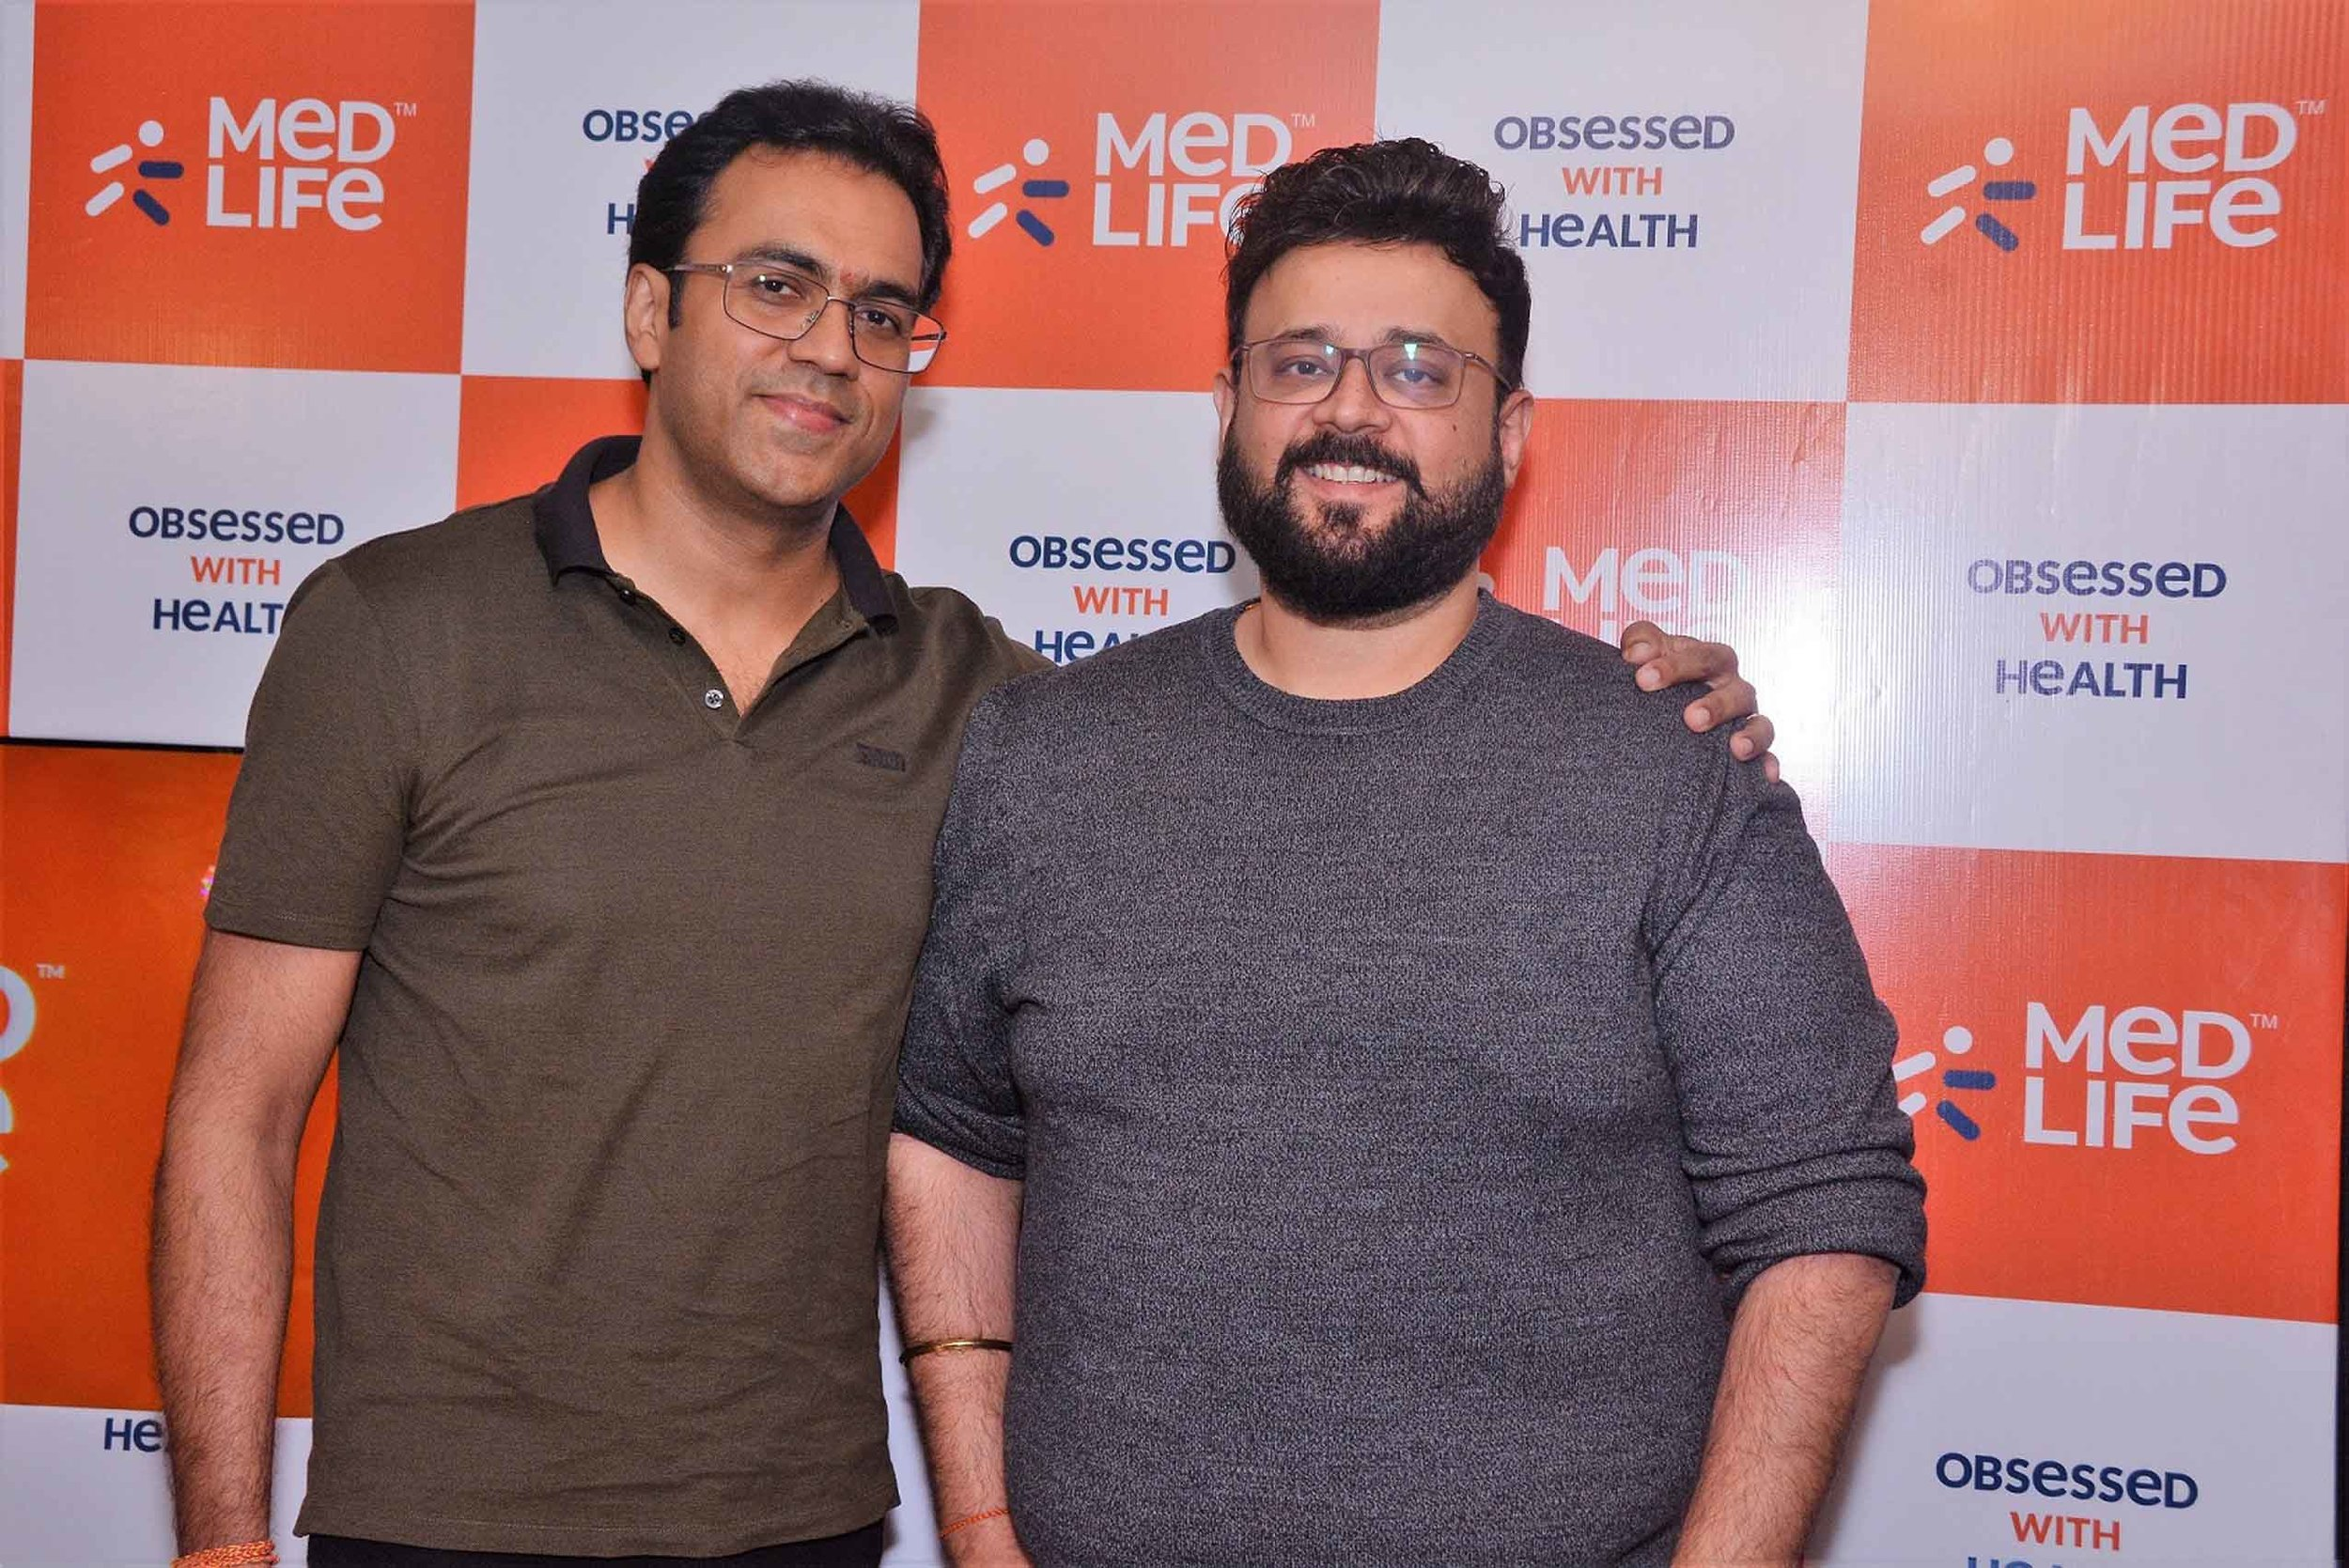 (L-R) Prashant Singh, Founder, Medlife and Tushar Kumar, CEO, Medlife